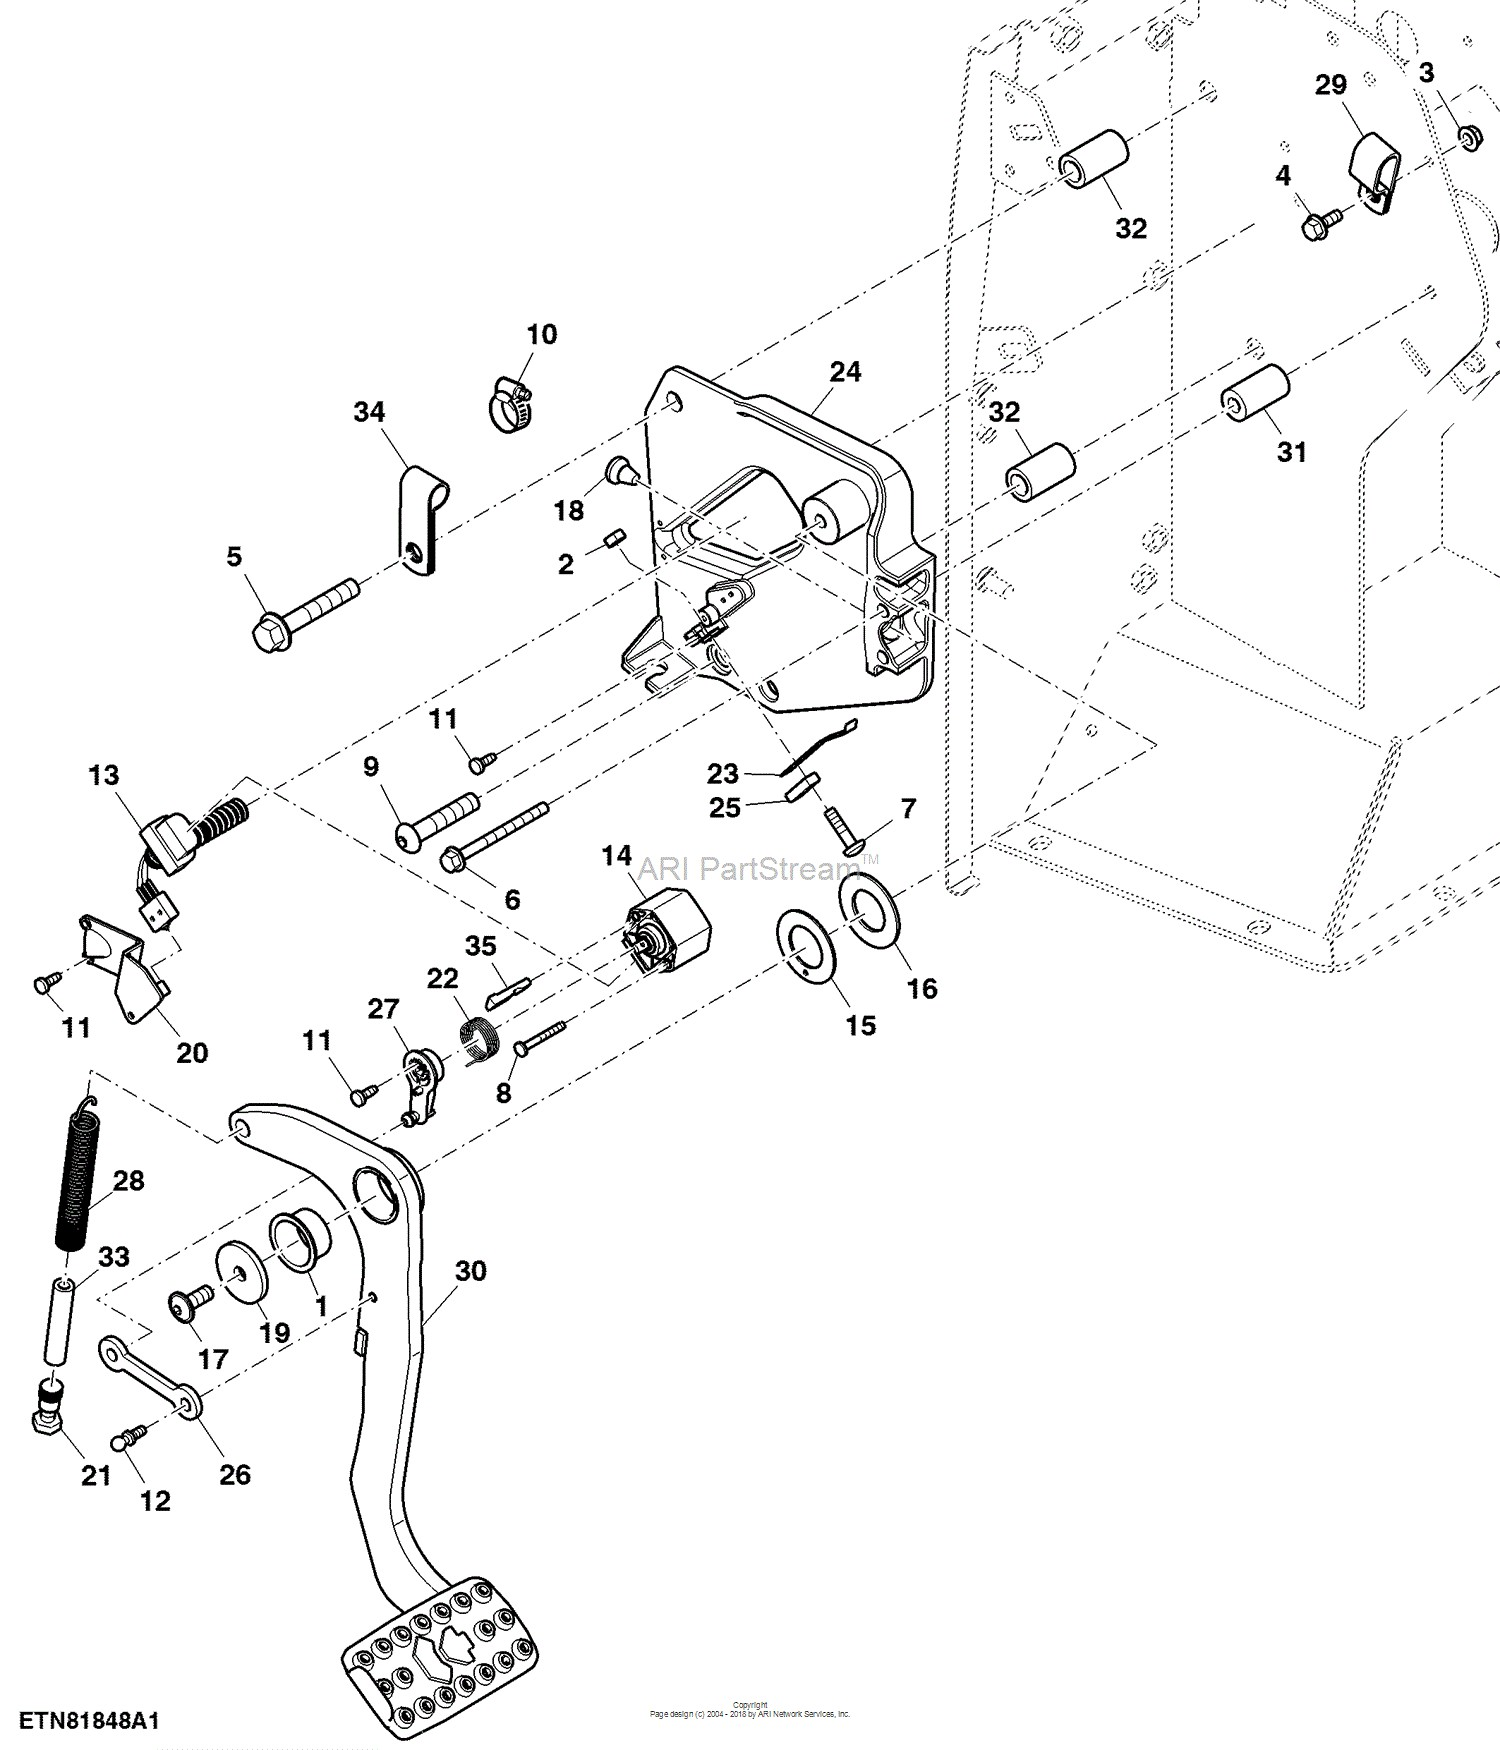 Tractor Engine Parts Diagram John Deere Parts Diagrams John Deere 5085e Tractor Pc Clutch Of Tractor Engine Parts Diagram